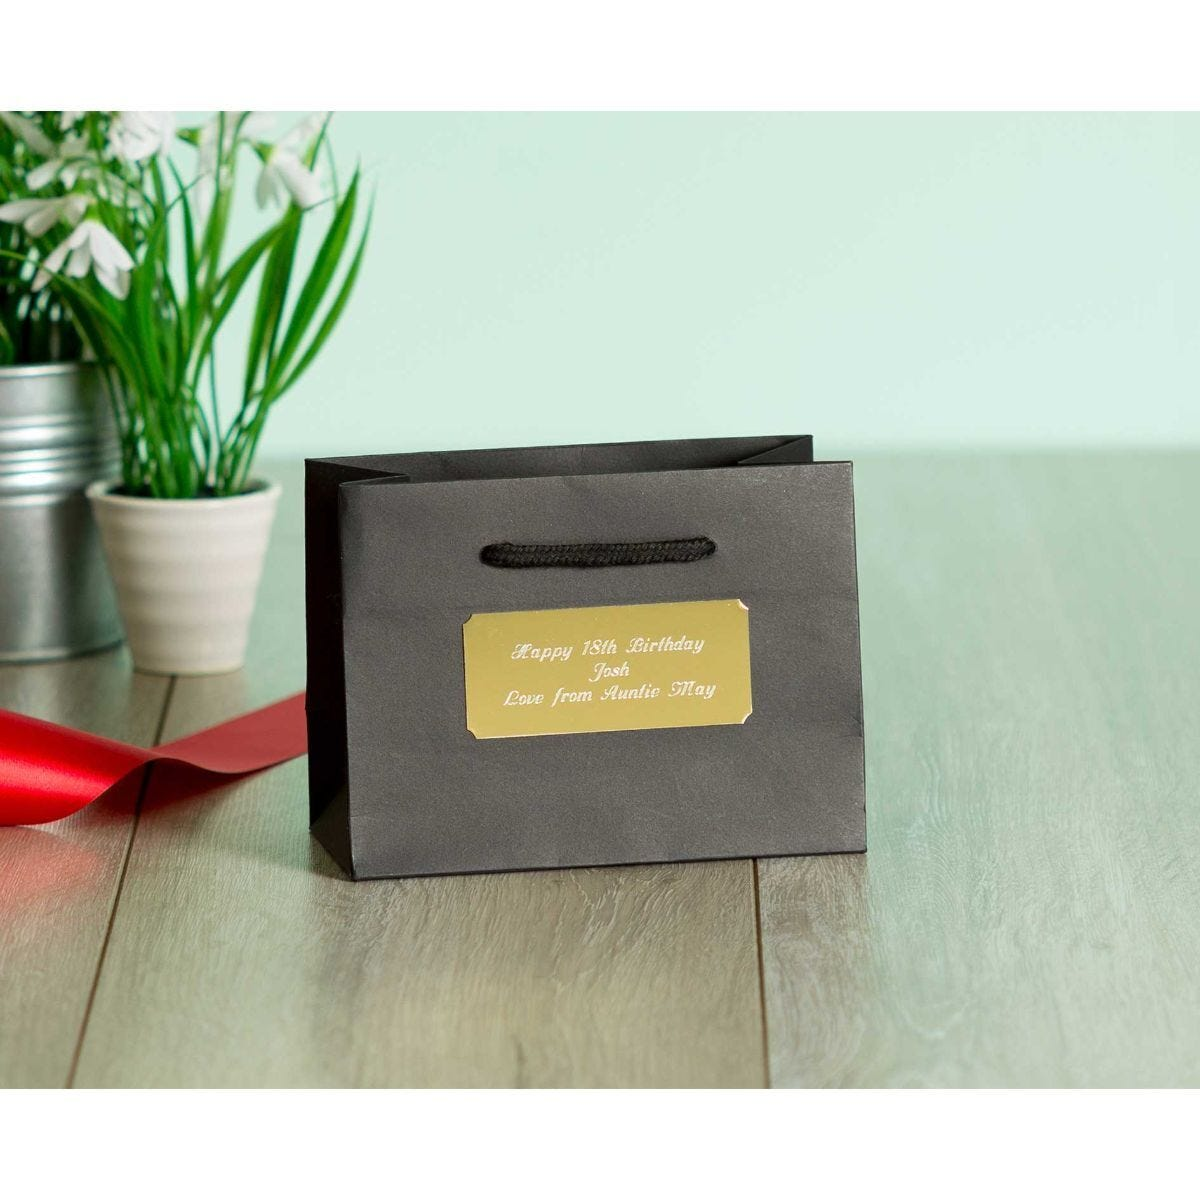 Personalised Luxury Small Black Gift Bag with Engraved Gold Plate